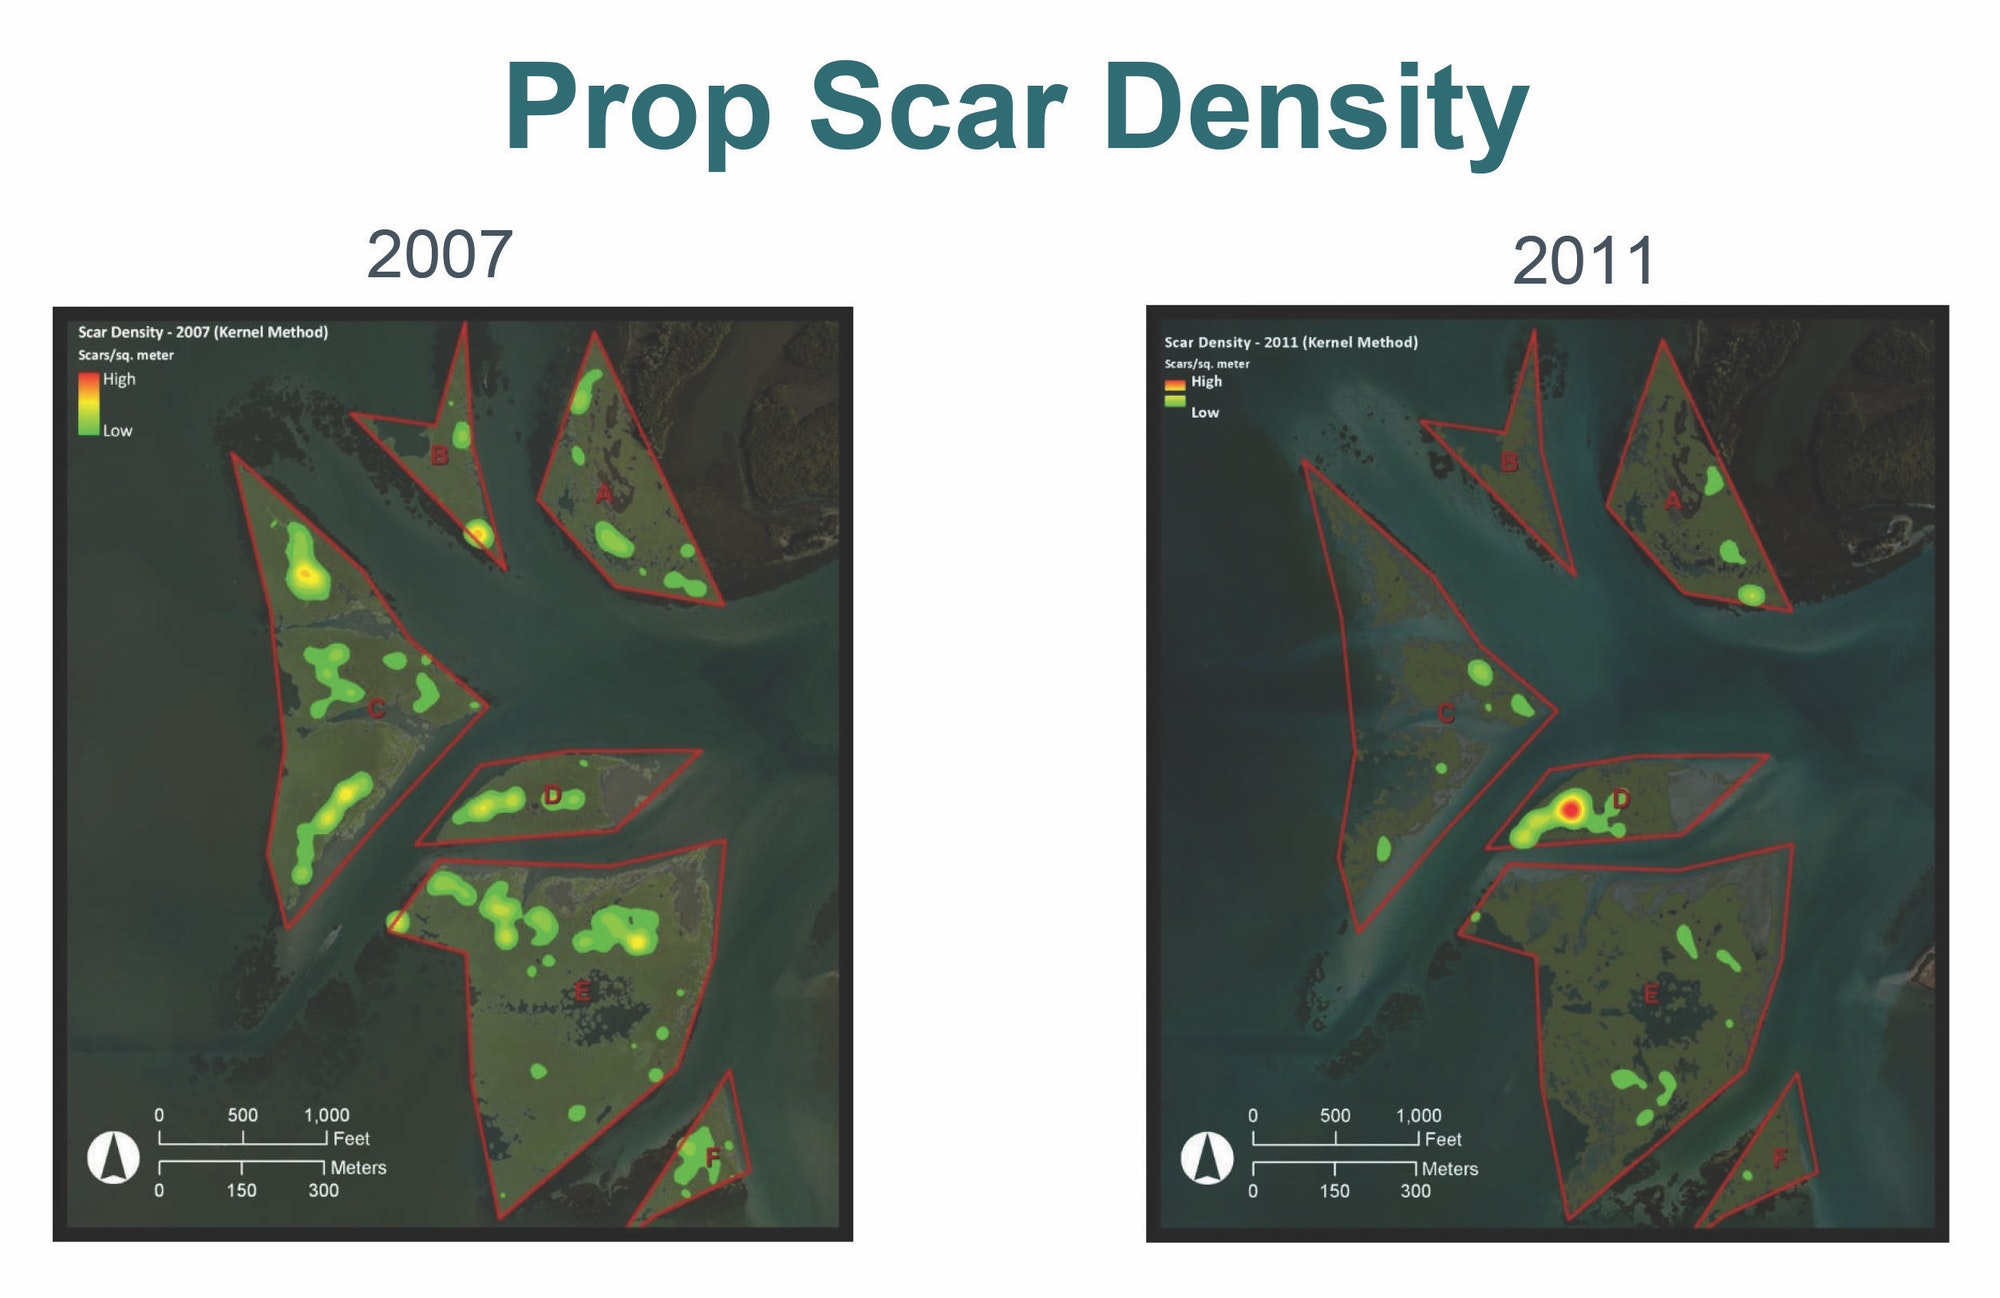 Two comparison images showing reduced prop scars from 2007 to 2011